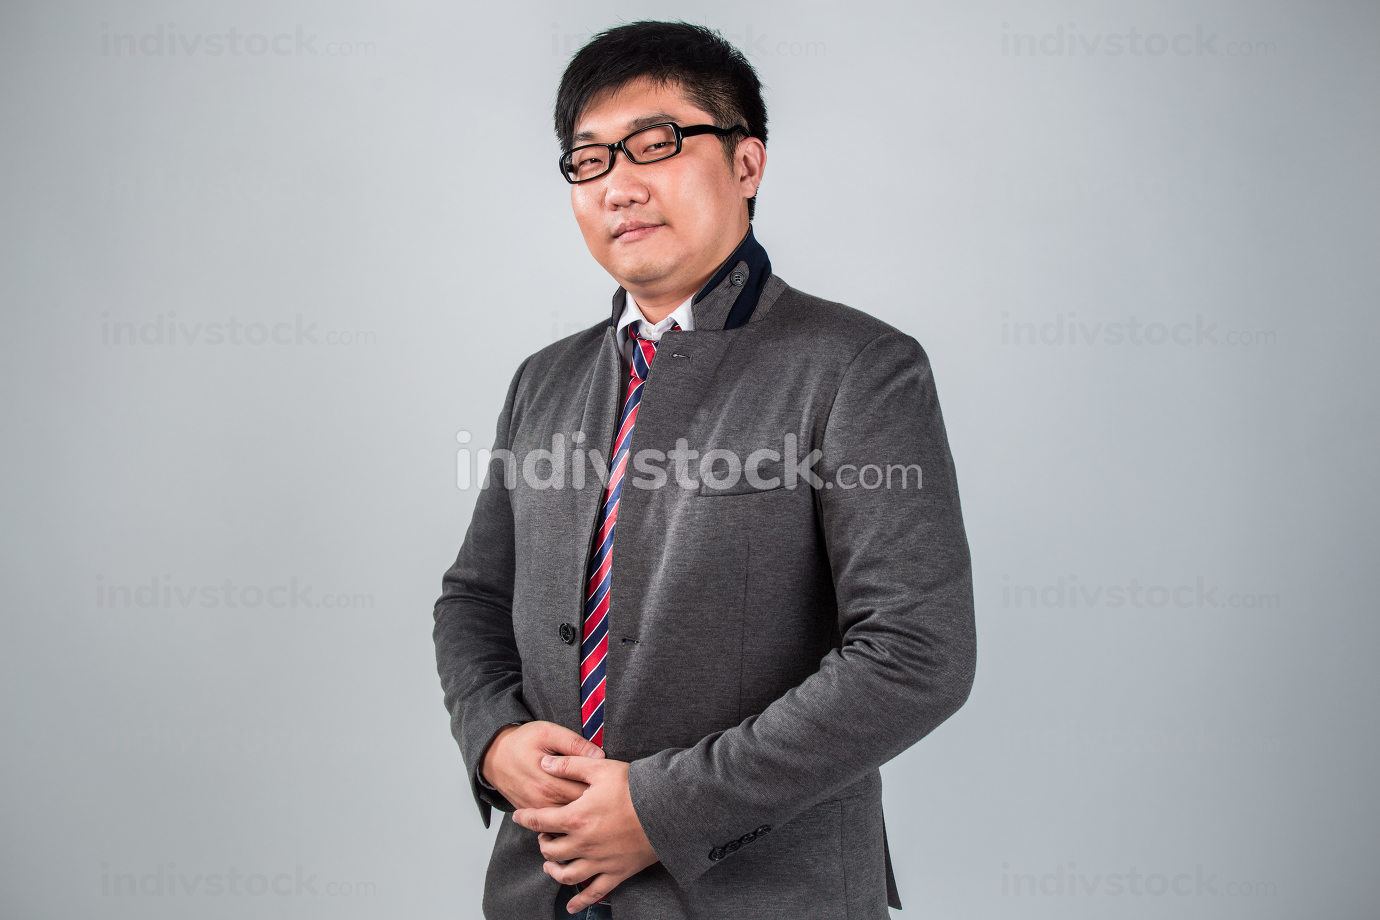 Man in suit wearing a glasses  good